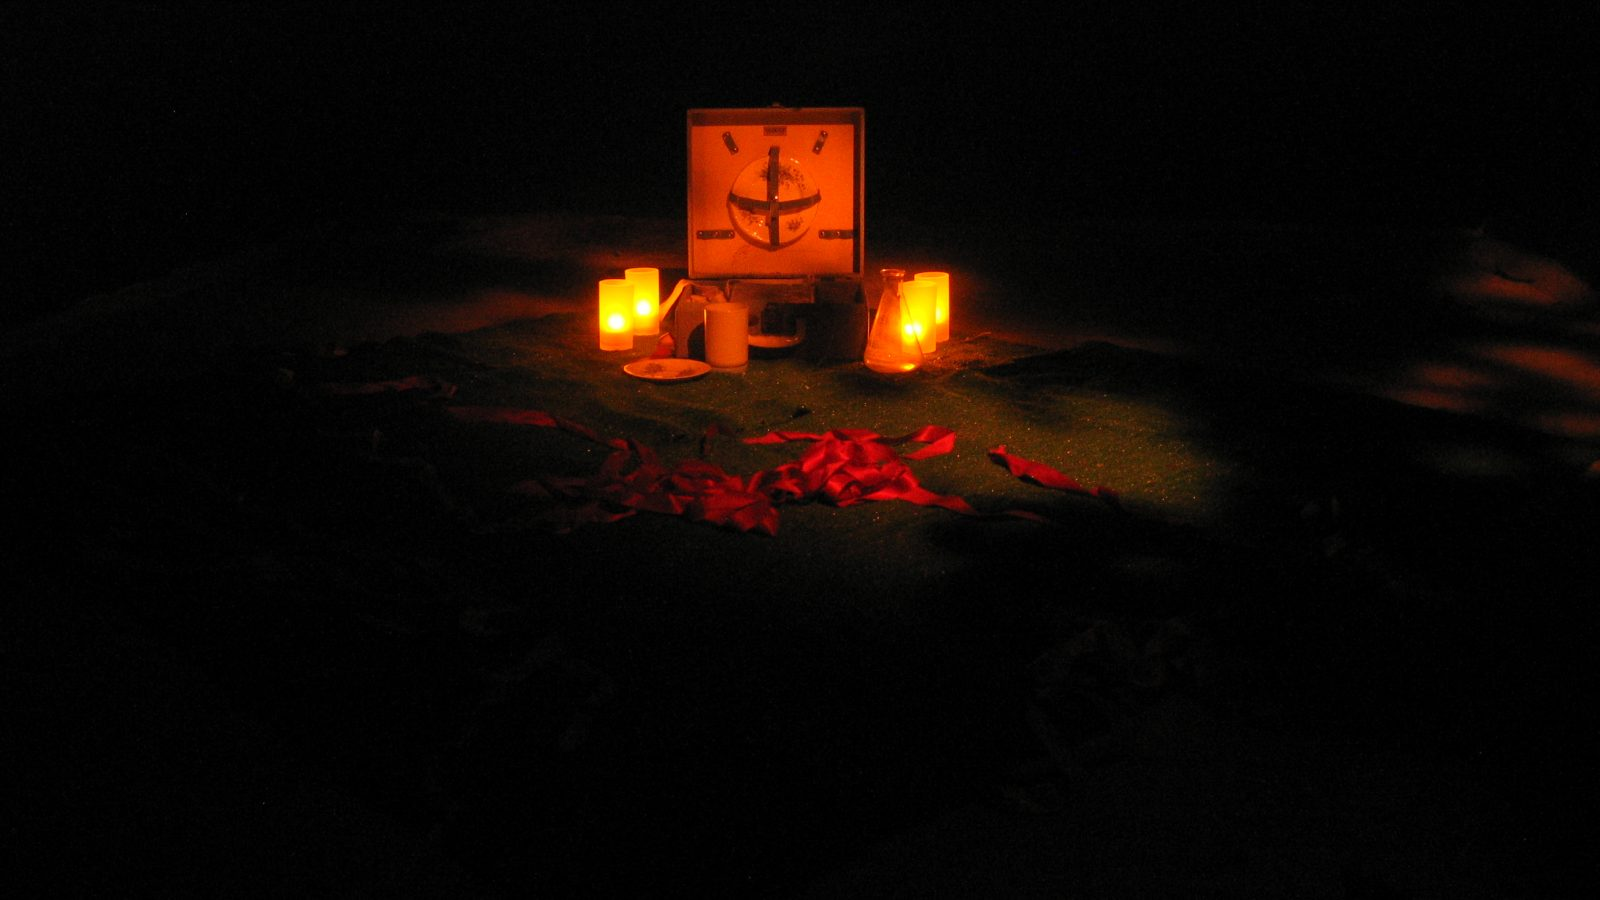 Candles, ribbons and box ornament on the floor, dimly lit